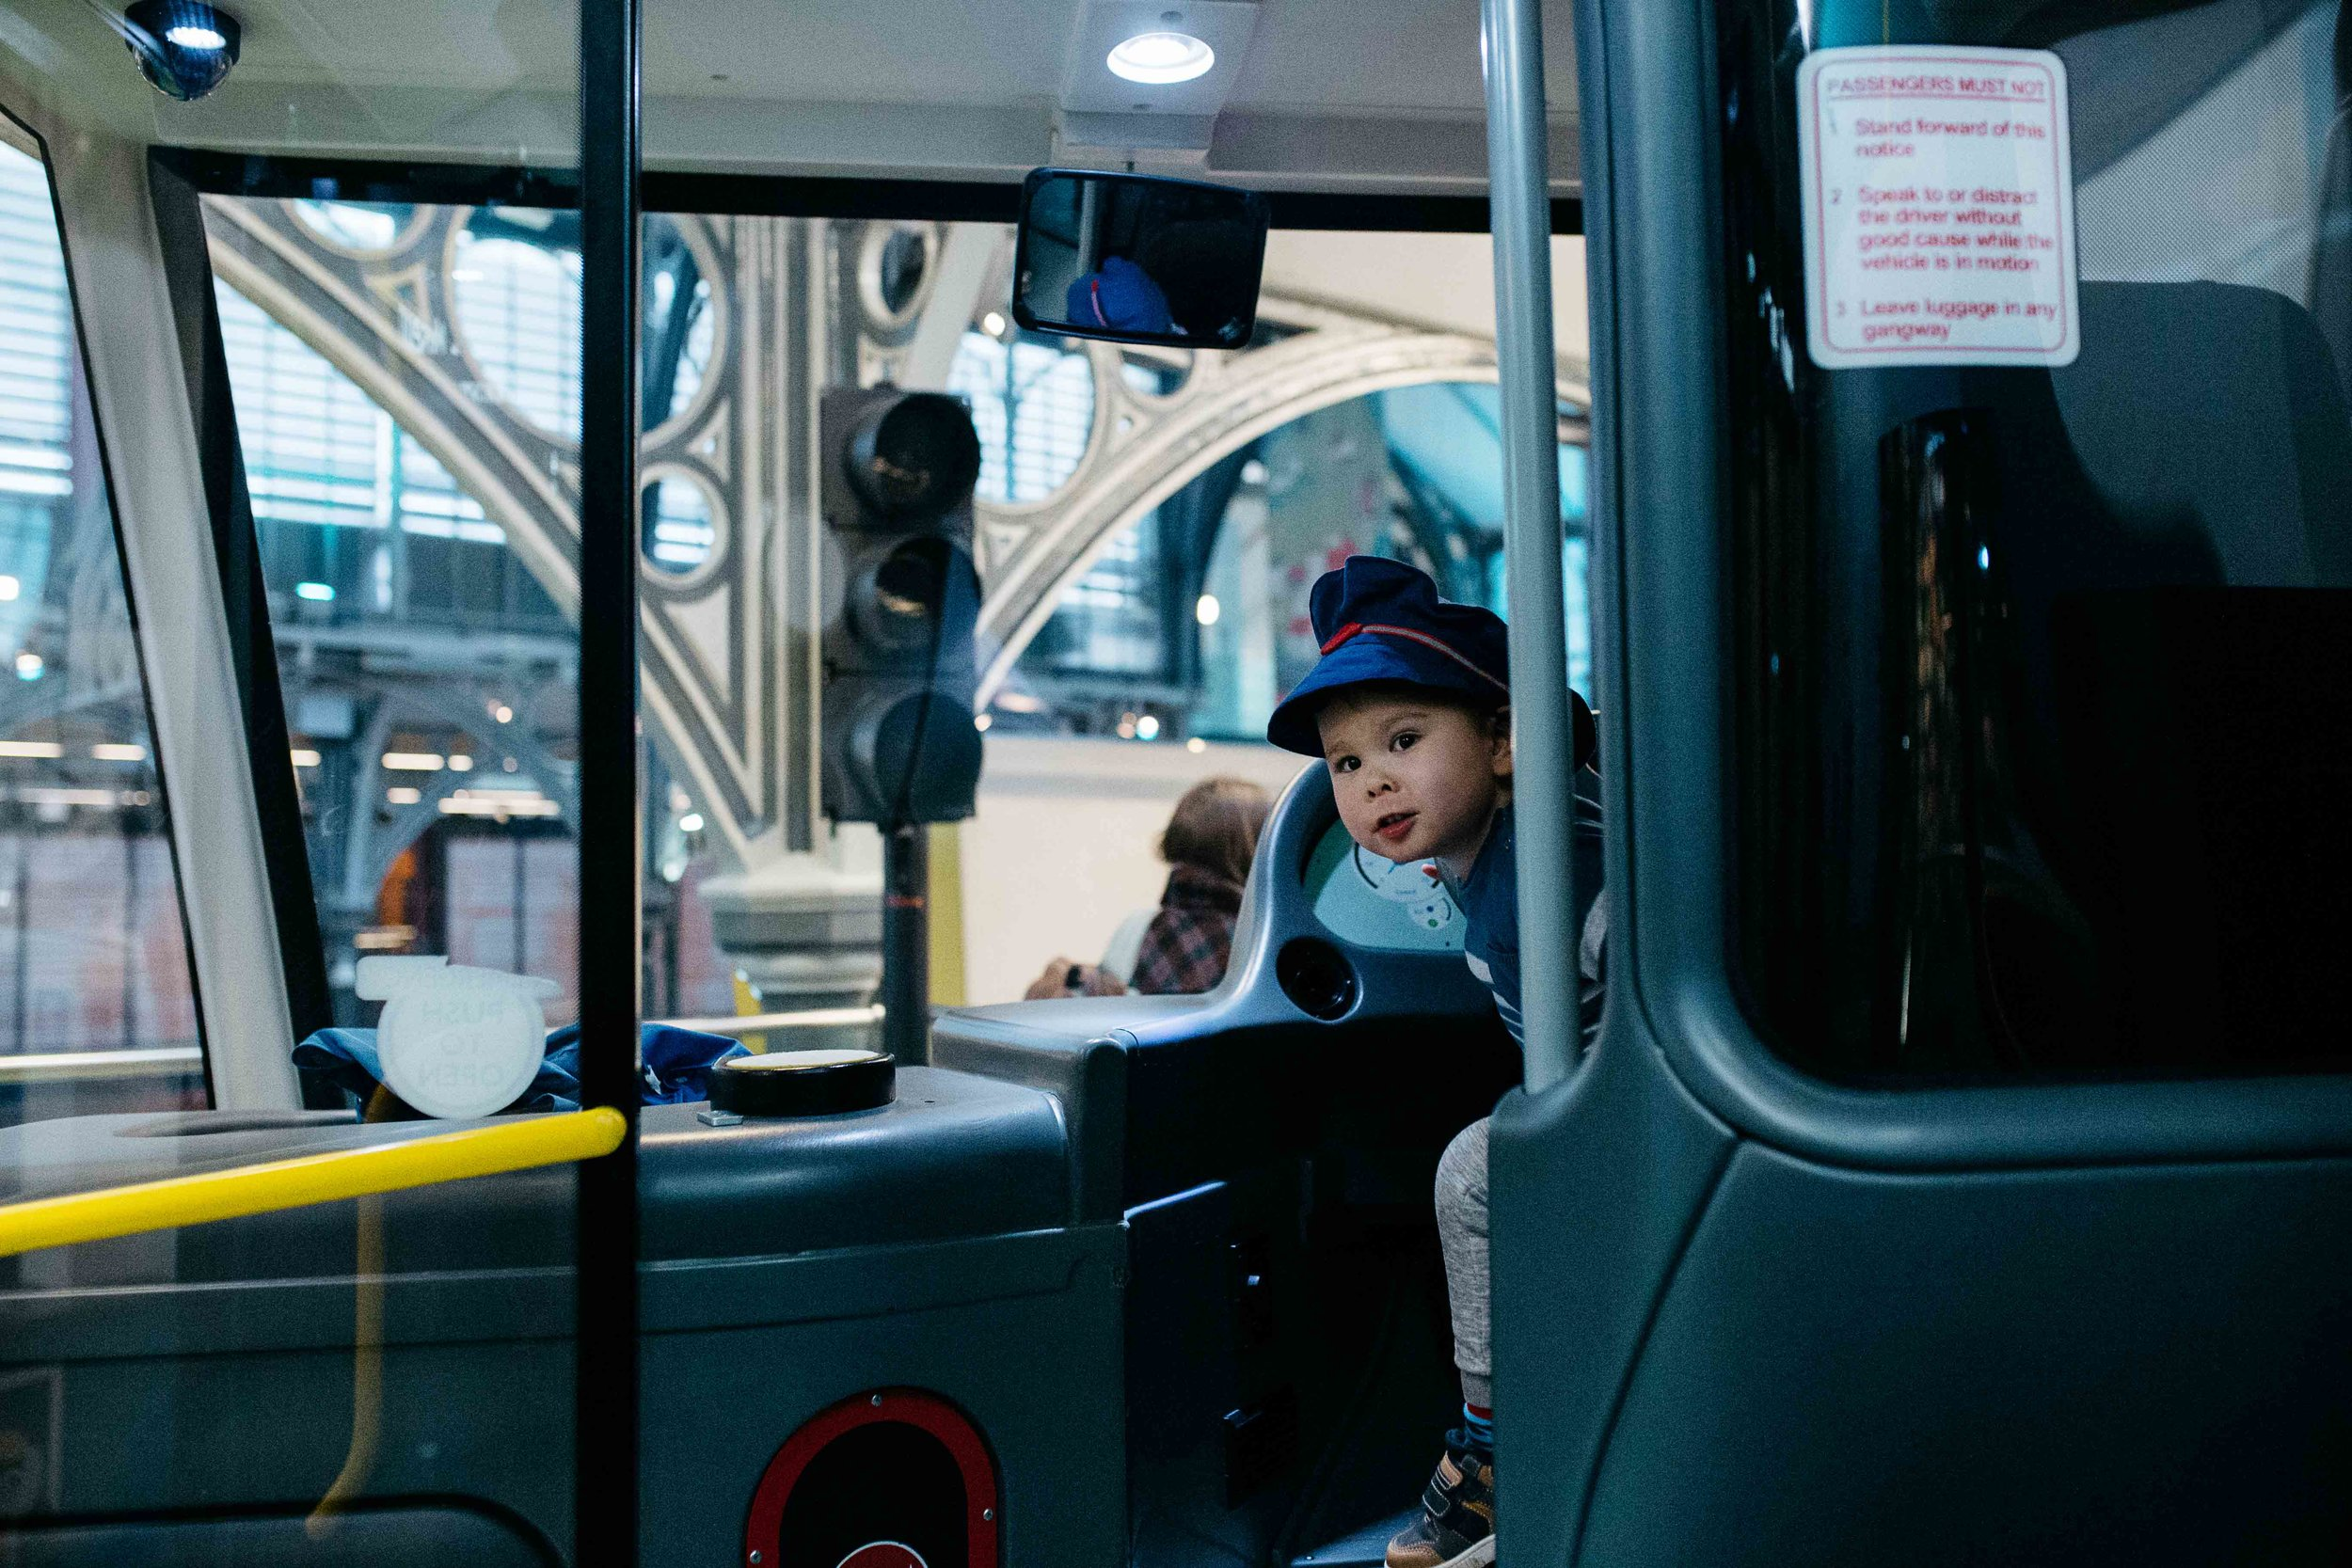 Little boy in a bus at the Museum of Transport in London during children photography session